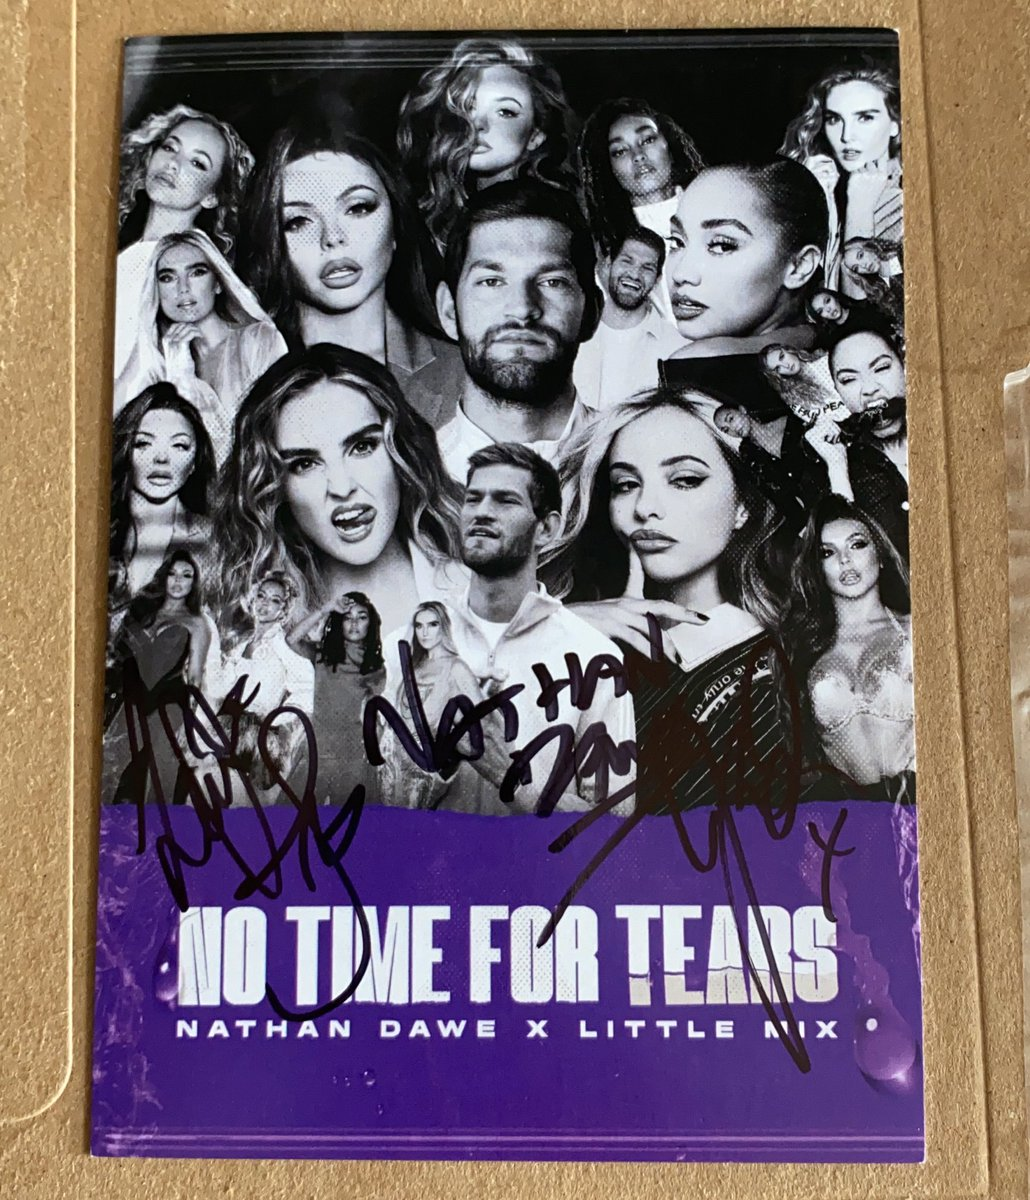 A fan received her no time for tears signed card wich is also signed by the girls!  Credits to: @confettihanny  #notimefortears @LittleMix @NathanDawe